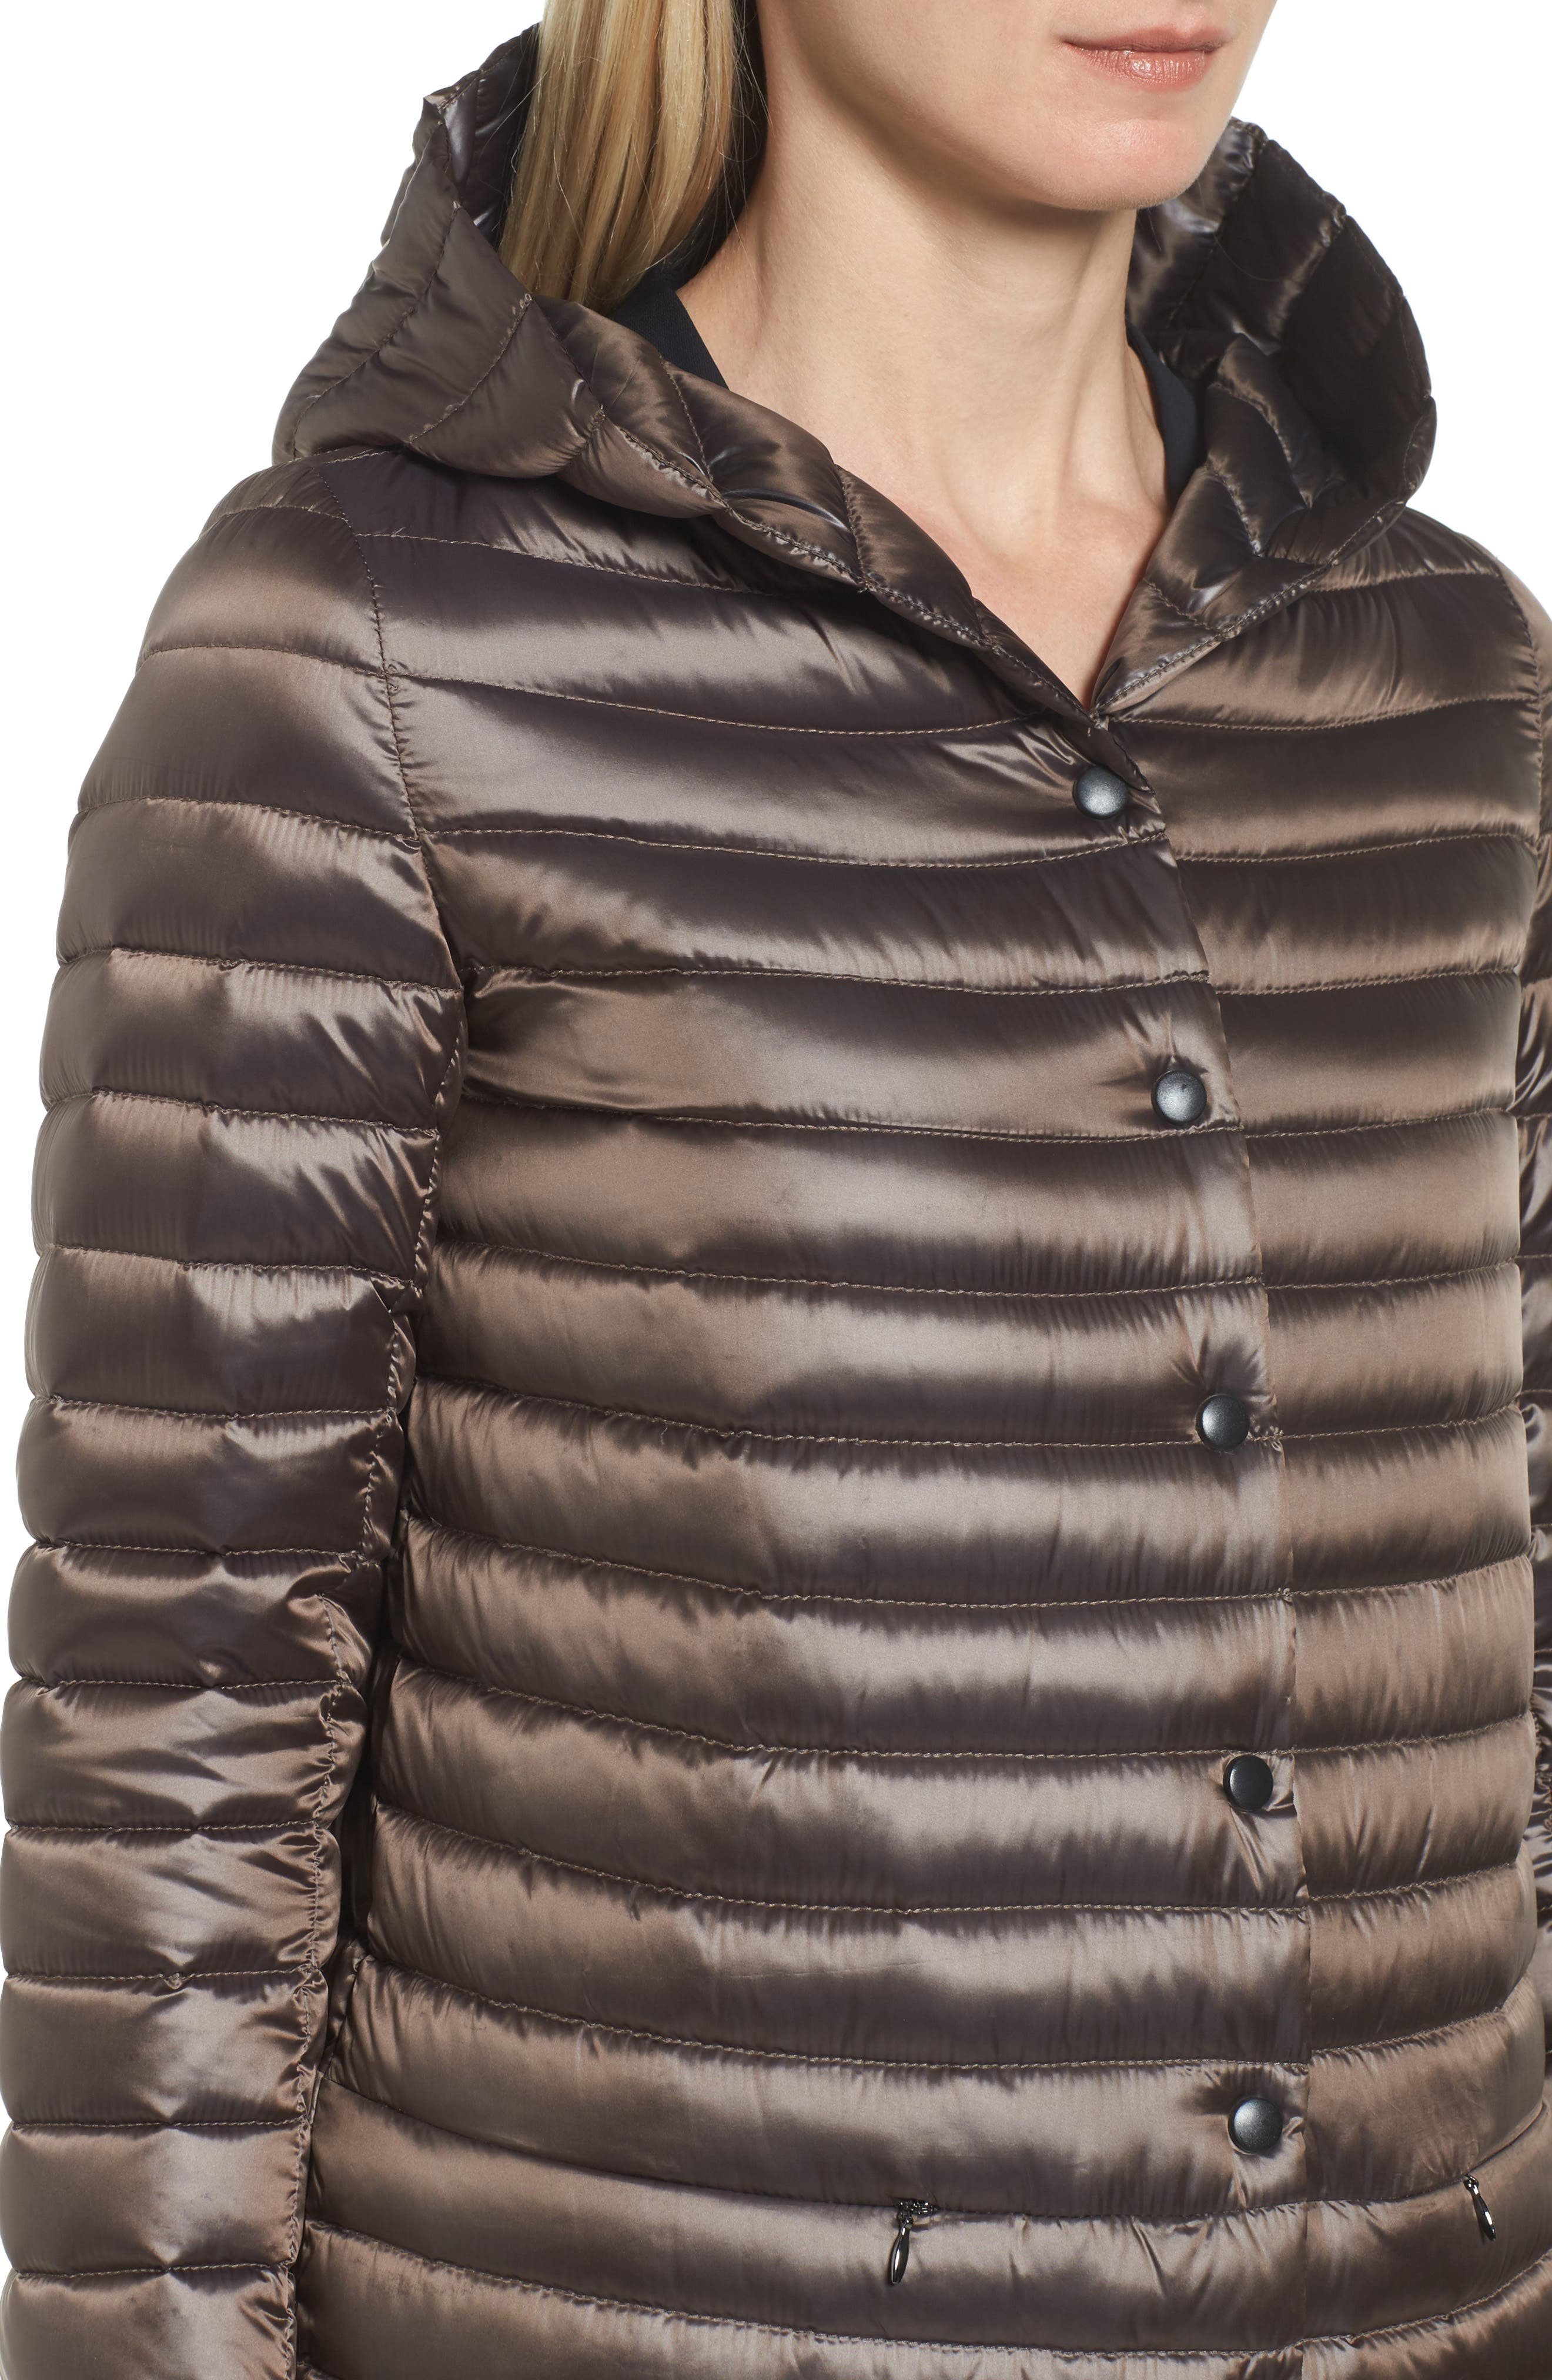 Reversible Down & Feather Fill Puffer Jacket,                             Alternate thumbnail 4, color,                             Copper